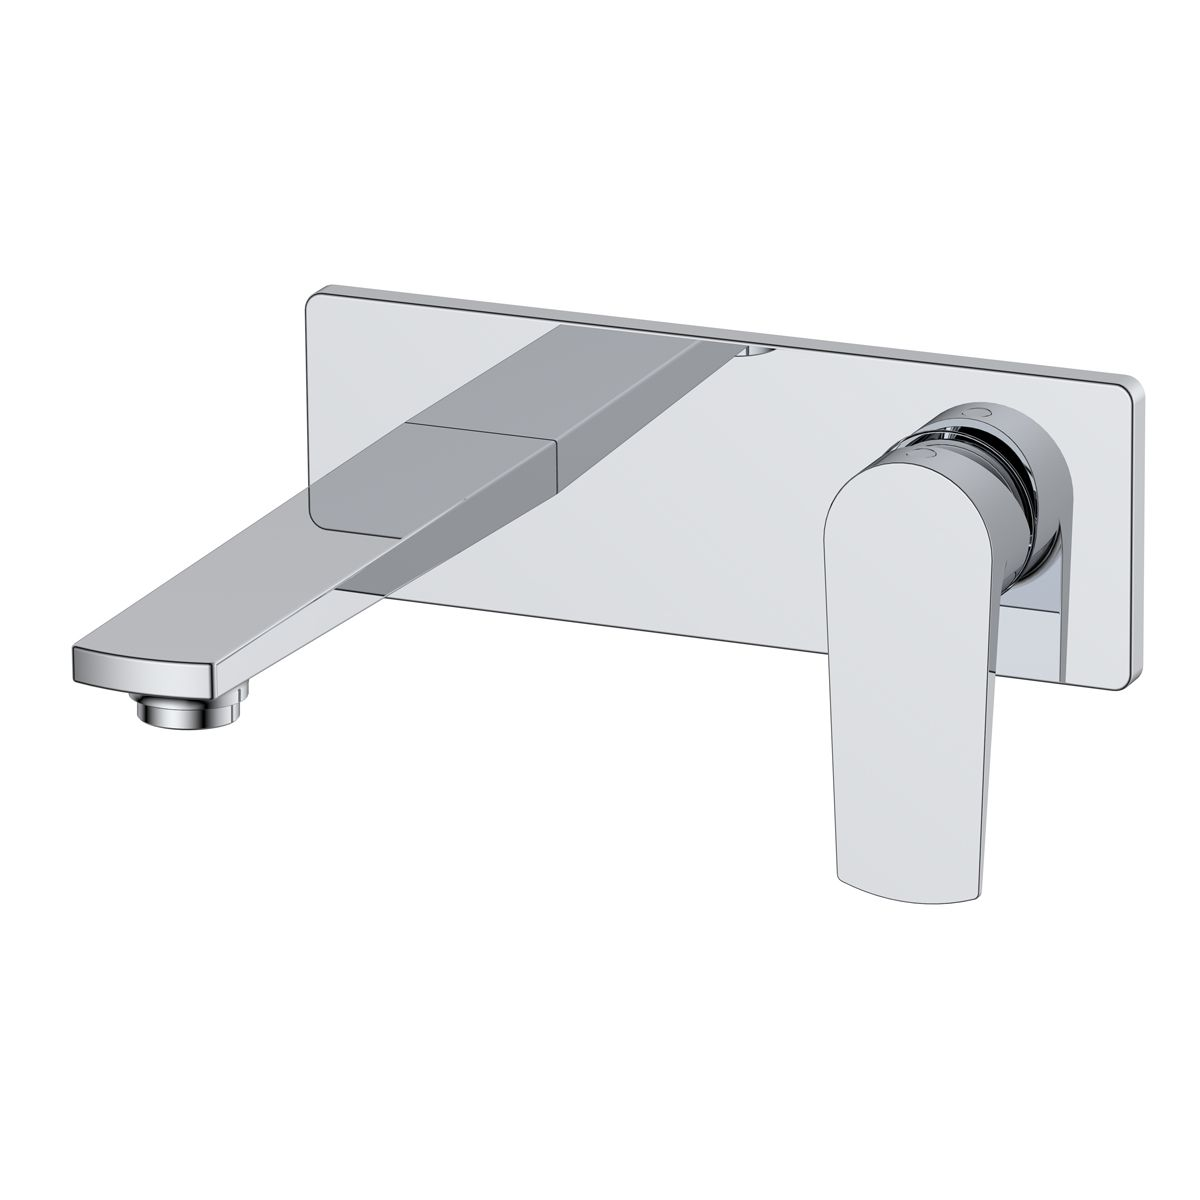 RAK Blade Wall Mounted Basin Mixer Tap with Backplate